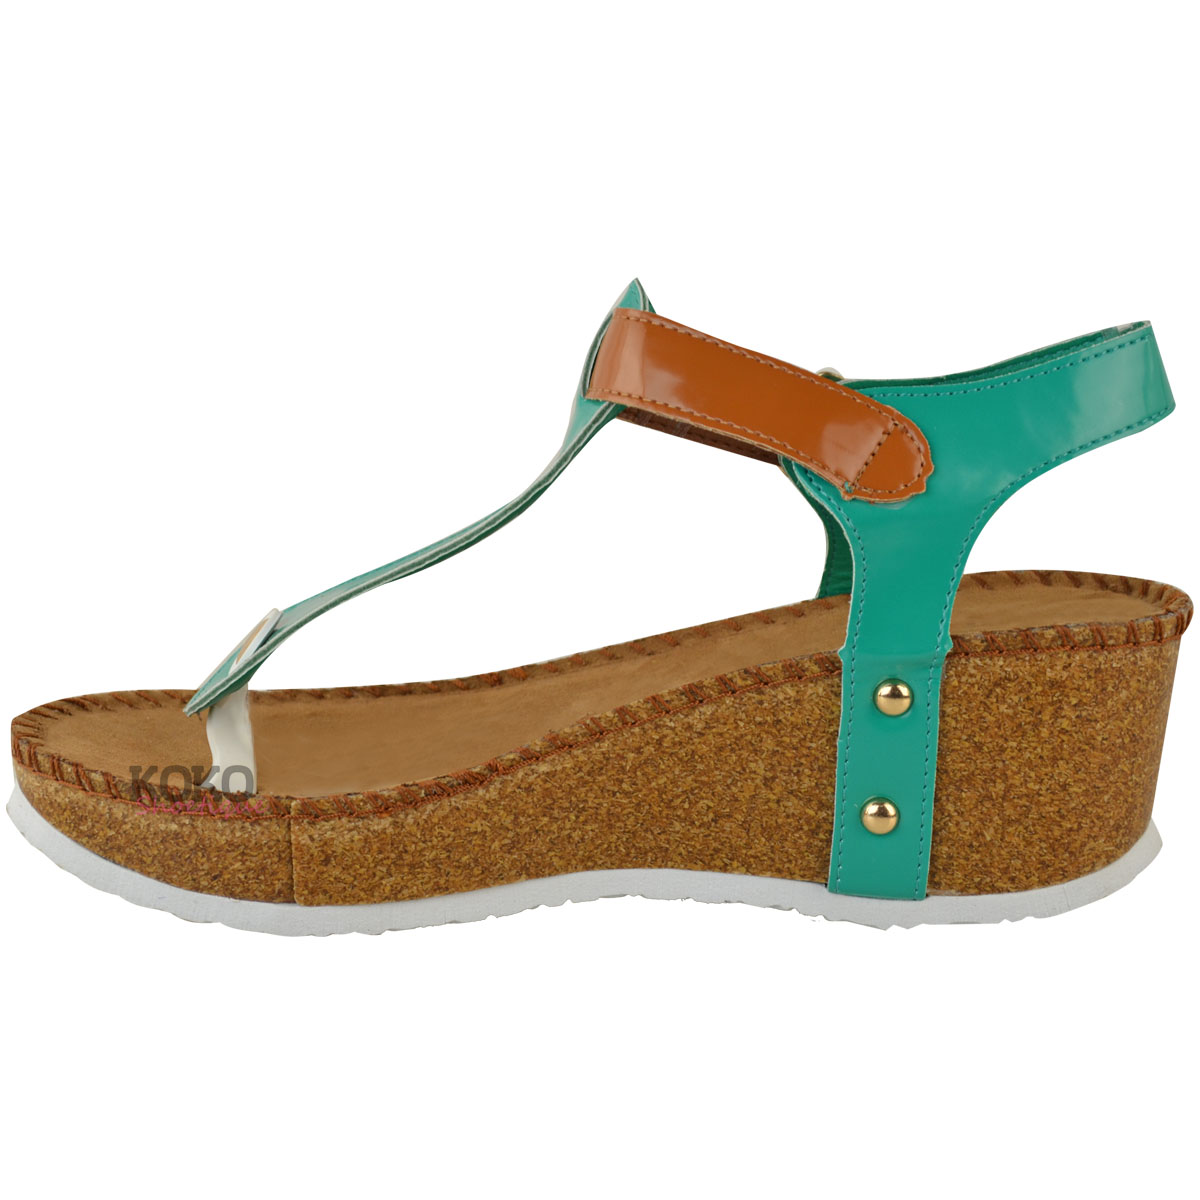 4b5dd6955 New Ladies Womens Wedge Comfort Sandals Cushioned Flip Flops Footbed ...